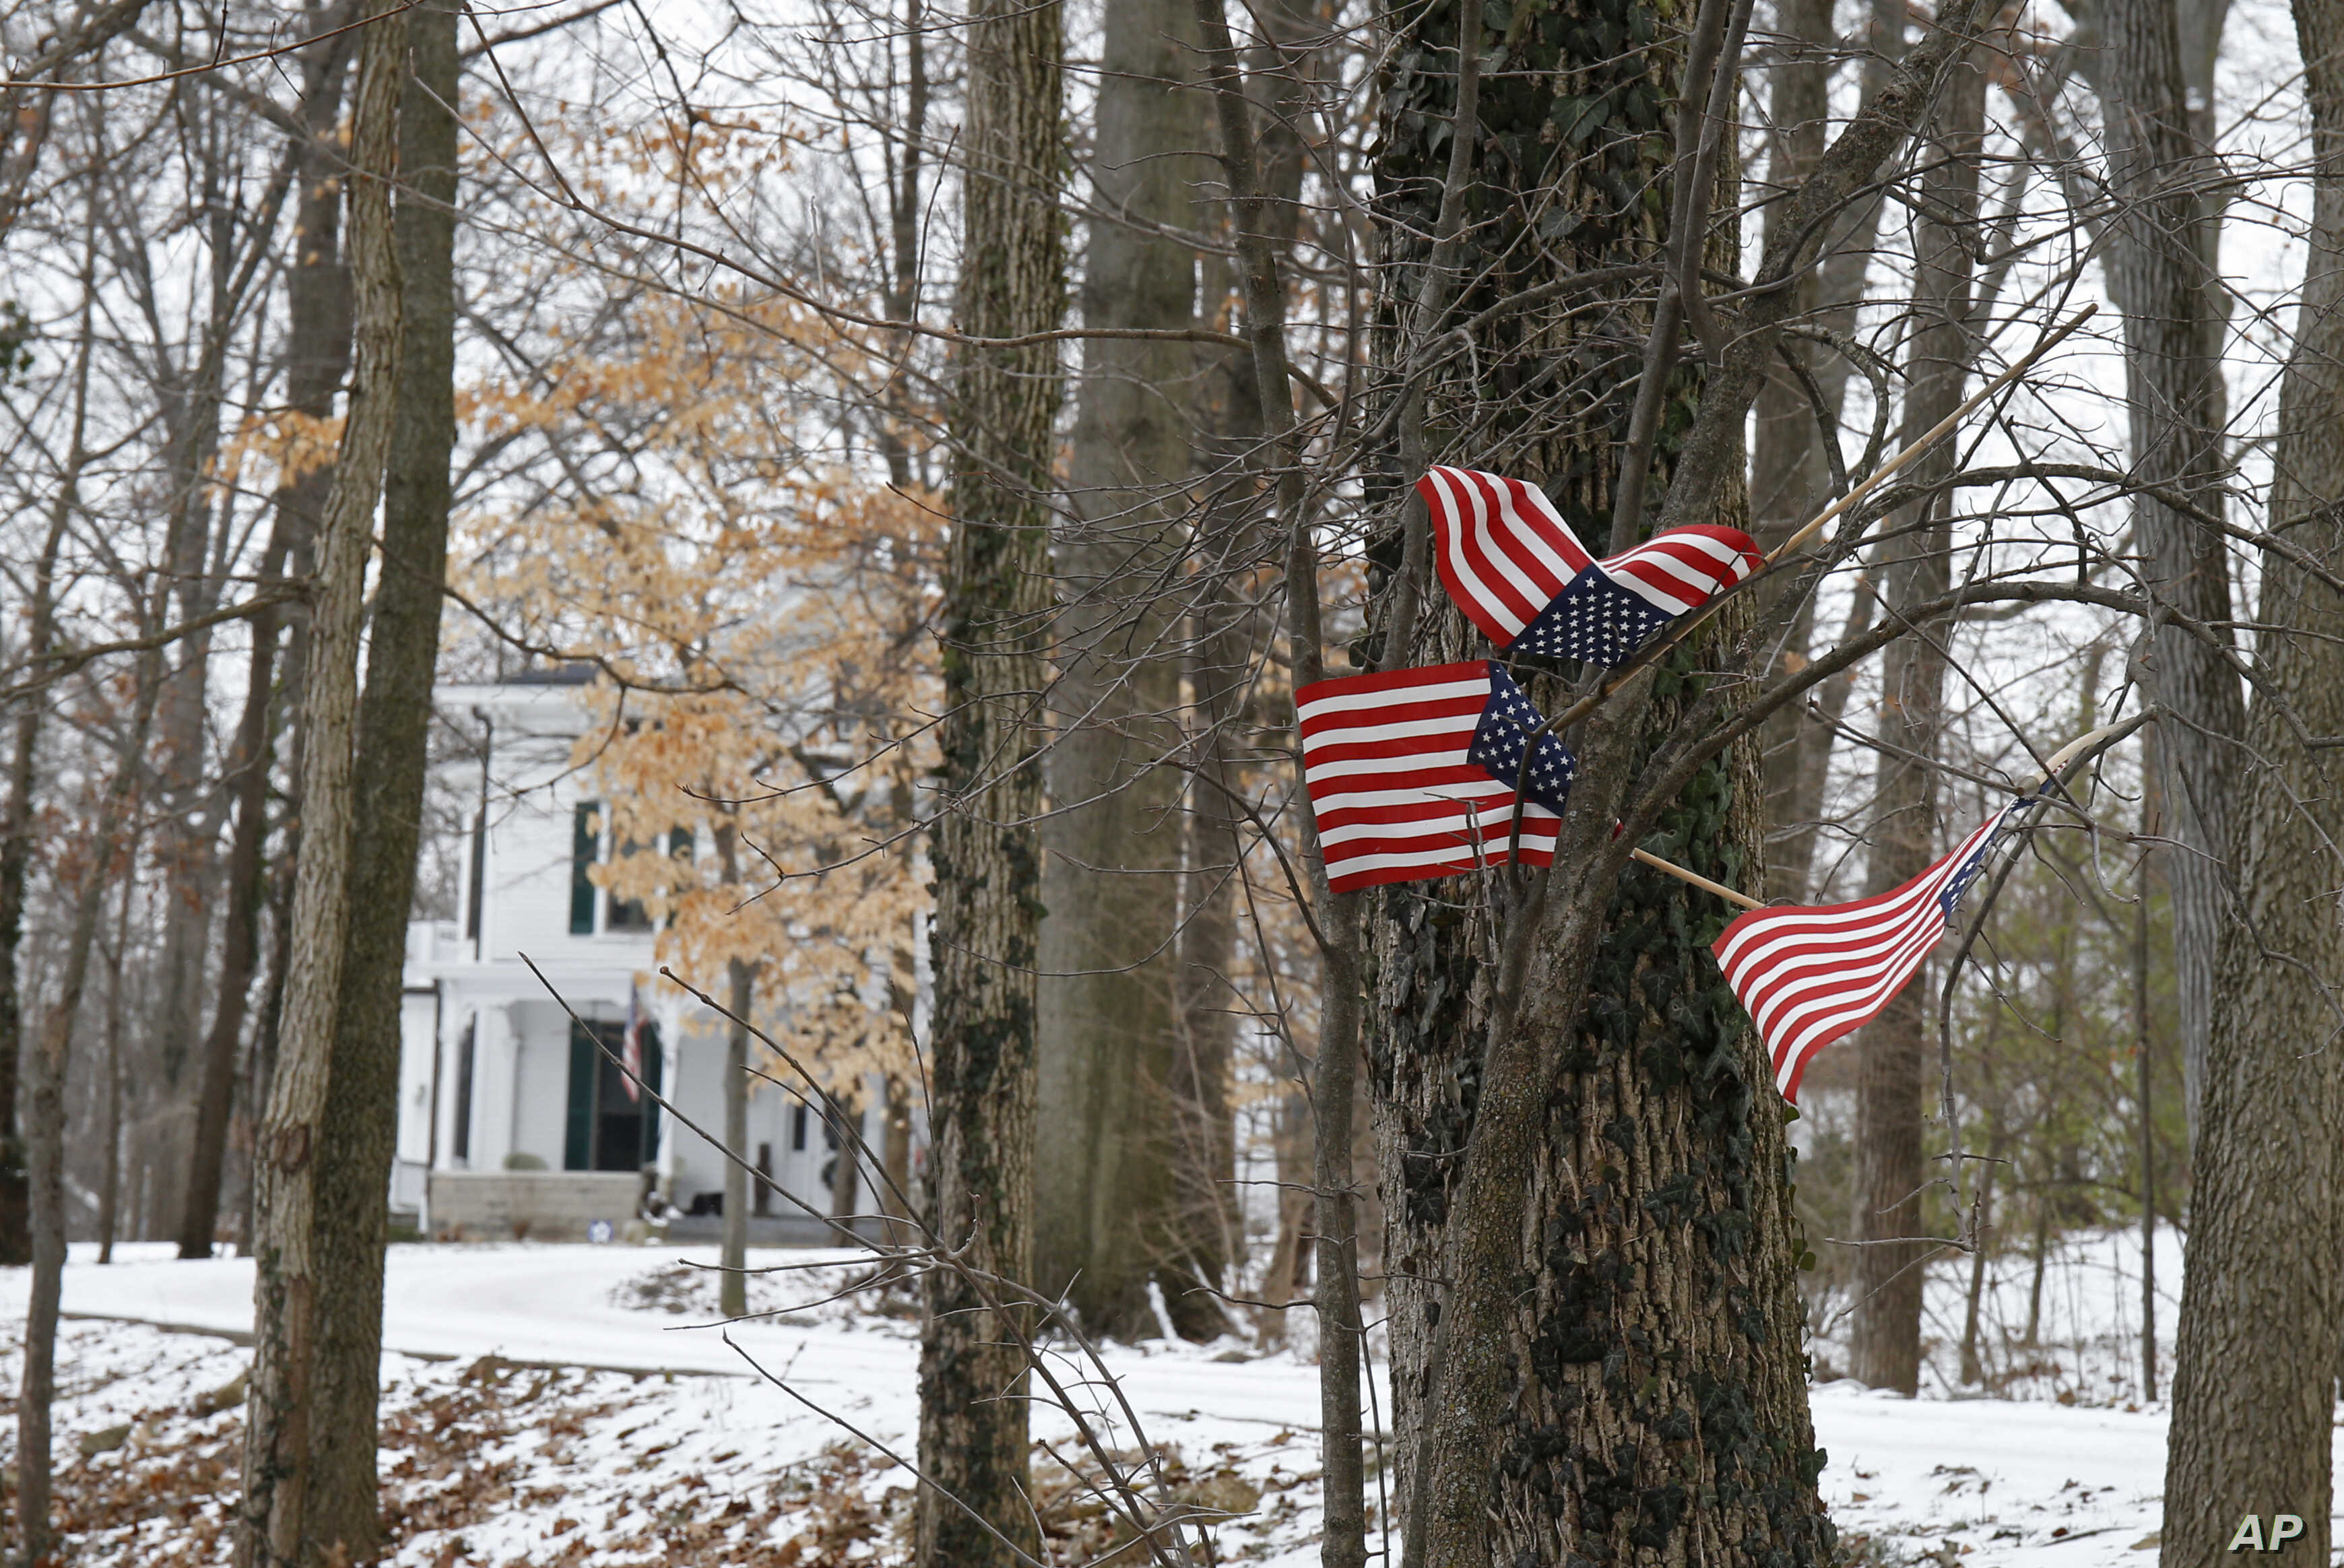 FILE 0 Small American flags have been placed in the trees in front of the Warmbier family home in Wyoming, Ohio, Jan. 22, 2016.